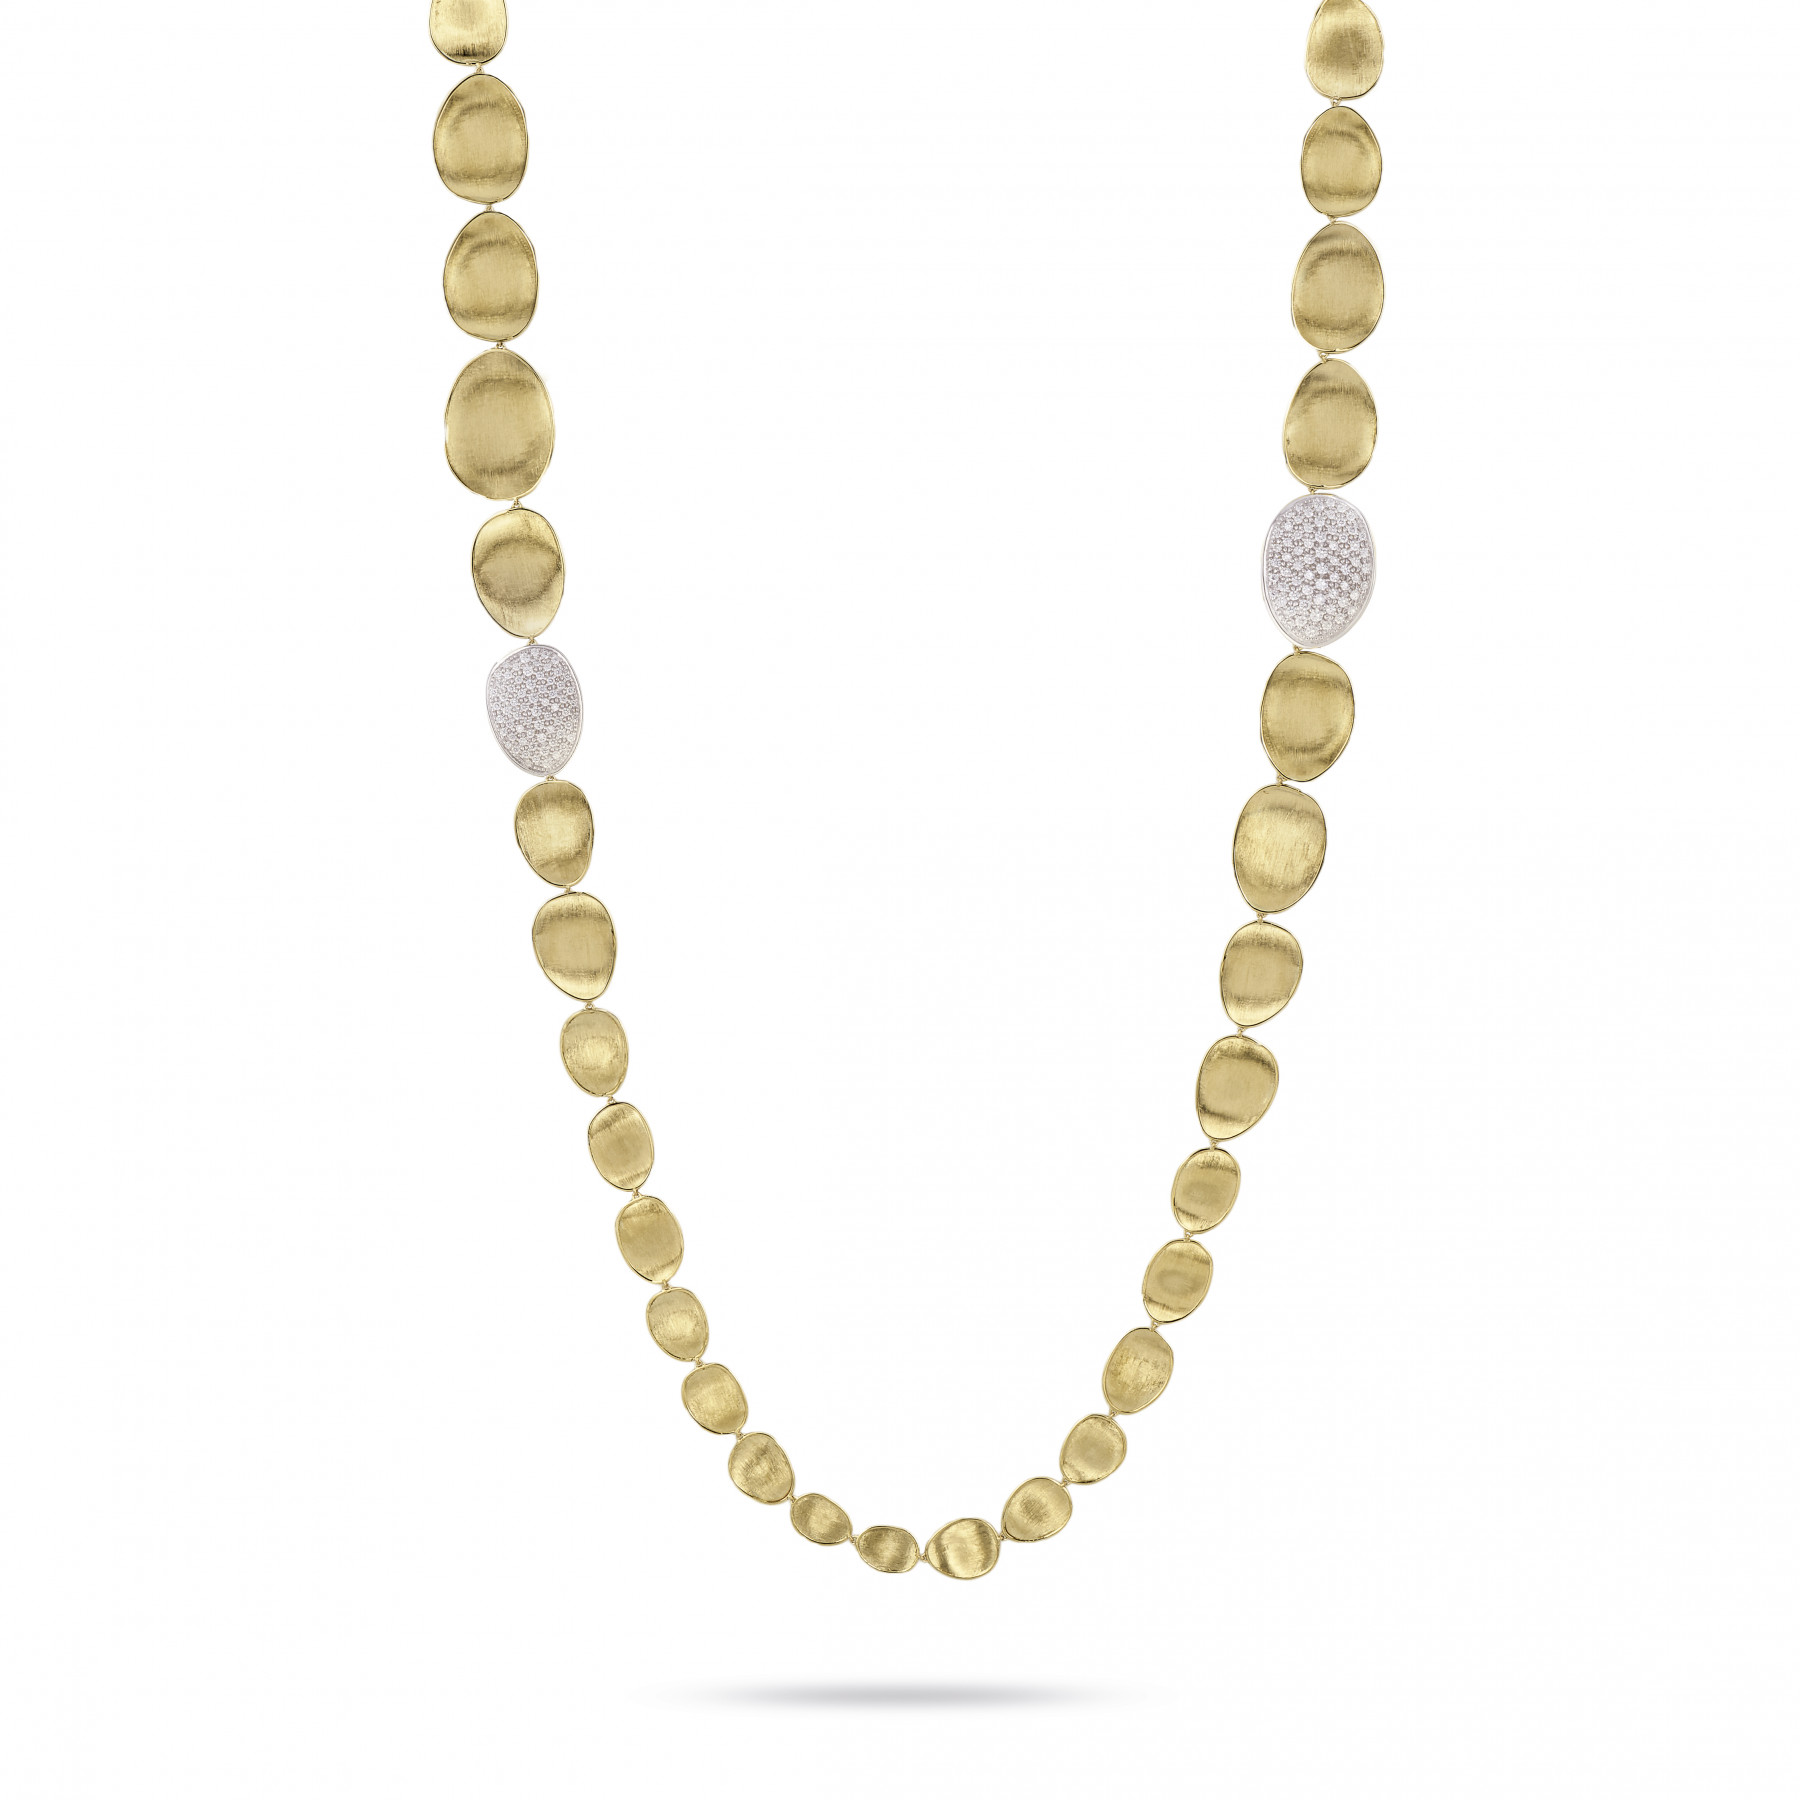 Marco Bicego Lunaria Double Wave Diamond Necklace